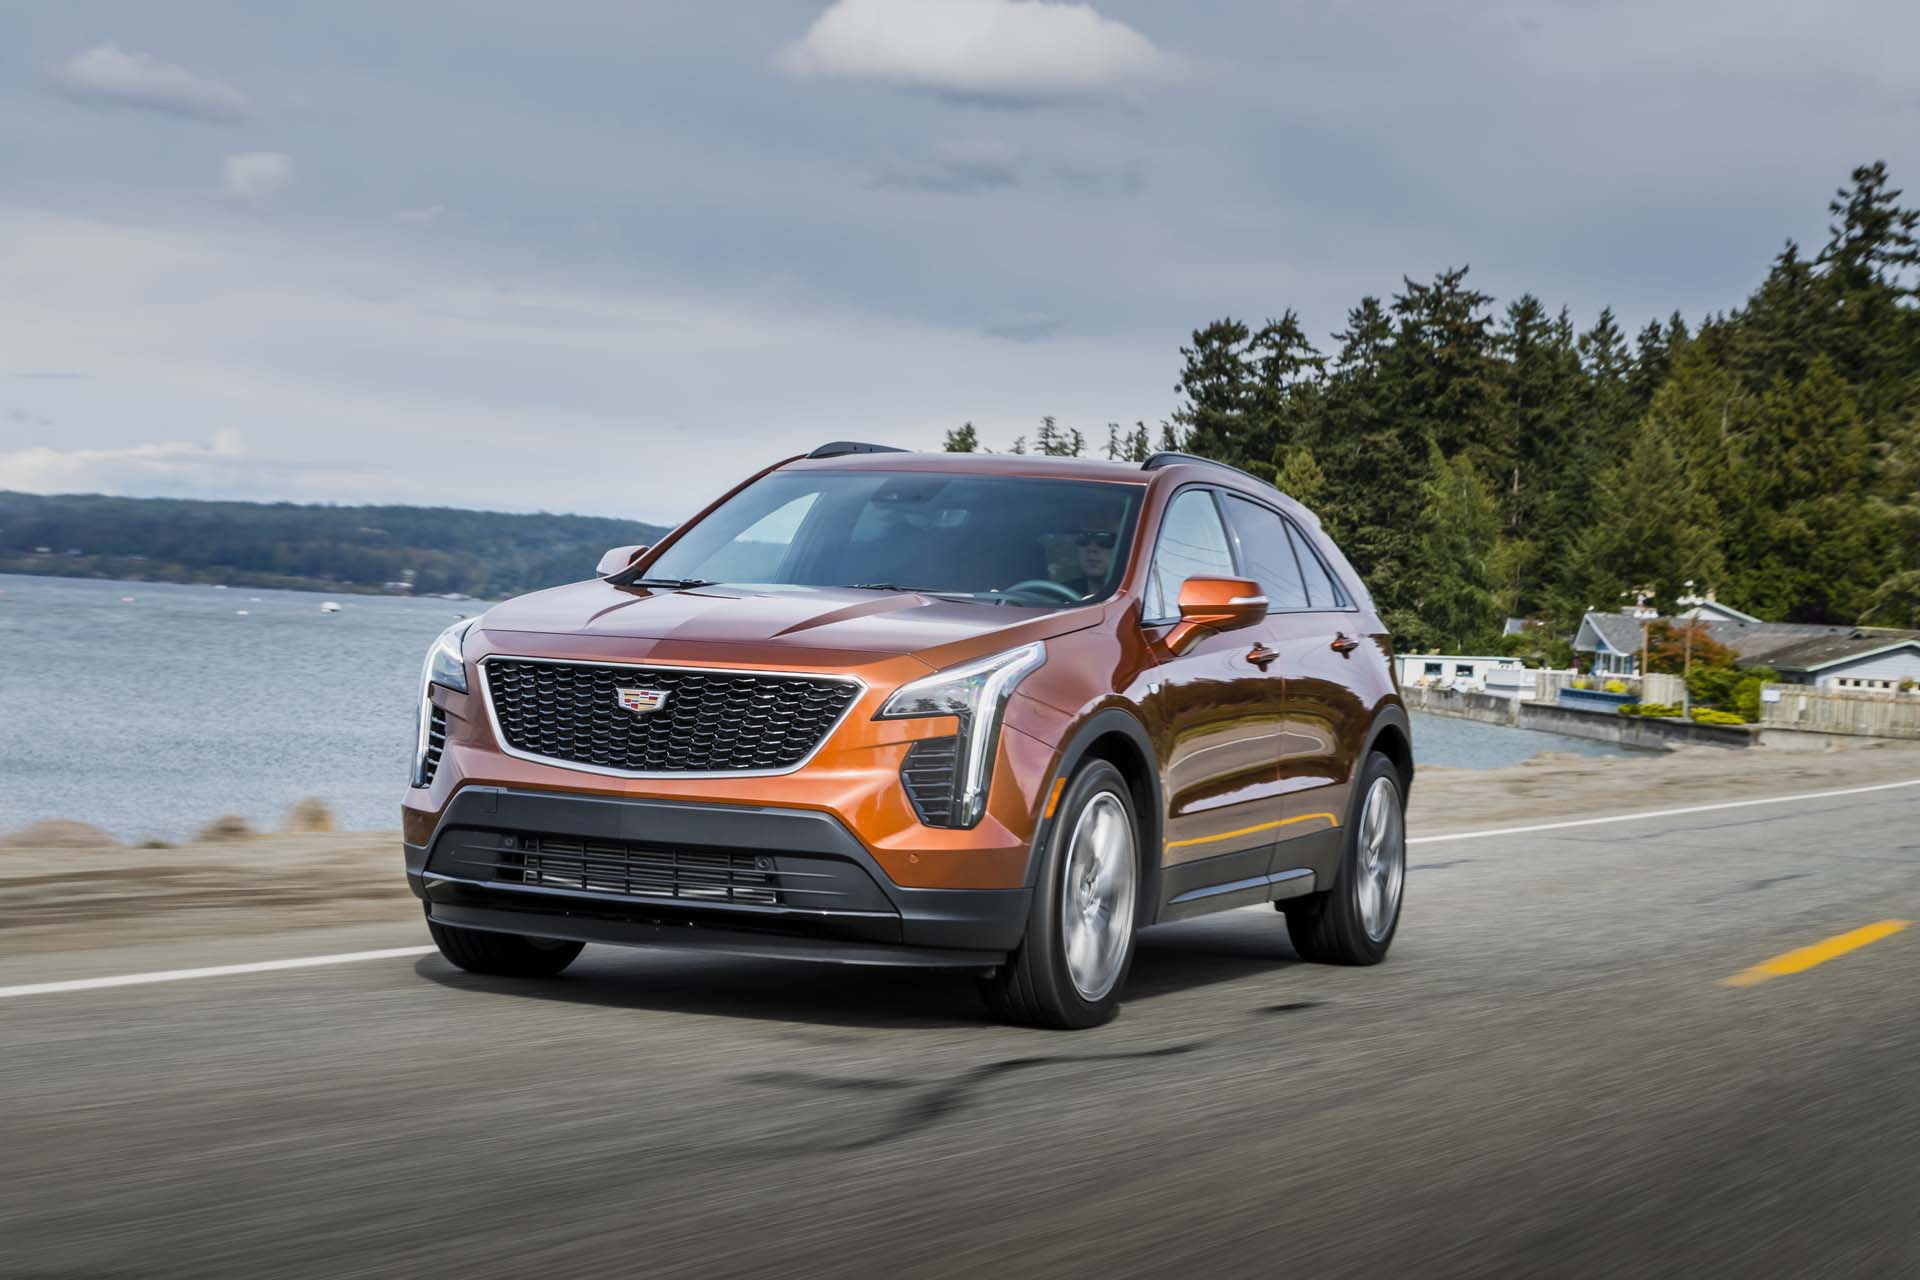 2019 Cadillac Xt4 First Drive Review Luxury Crossover Suv Finally Shows Up Off